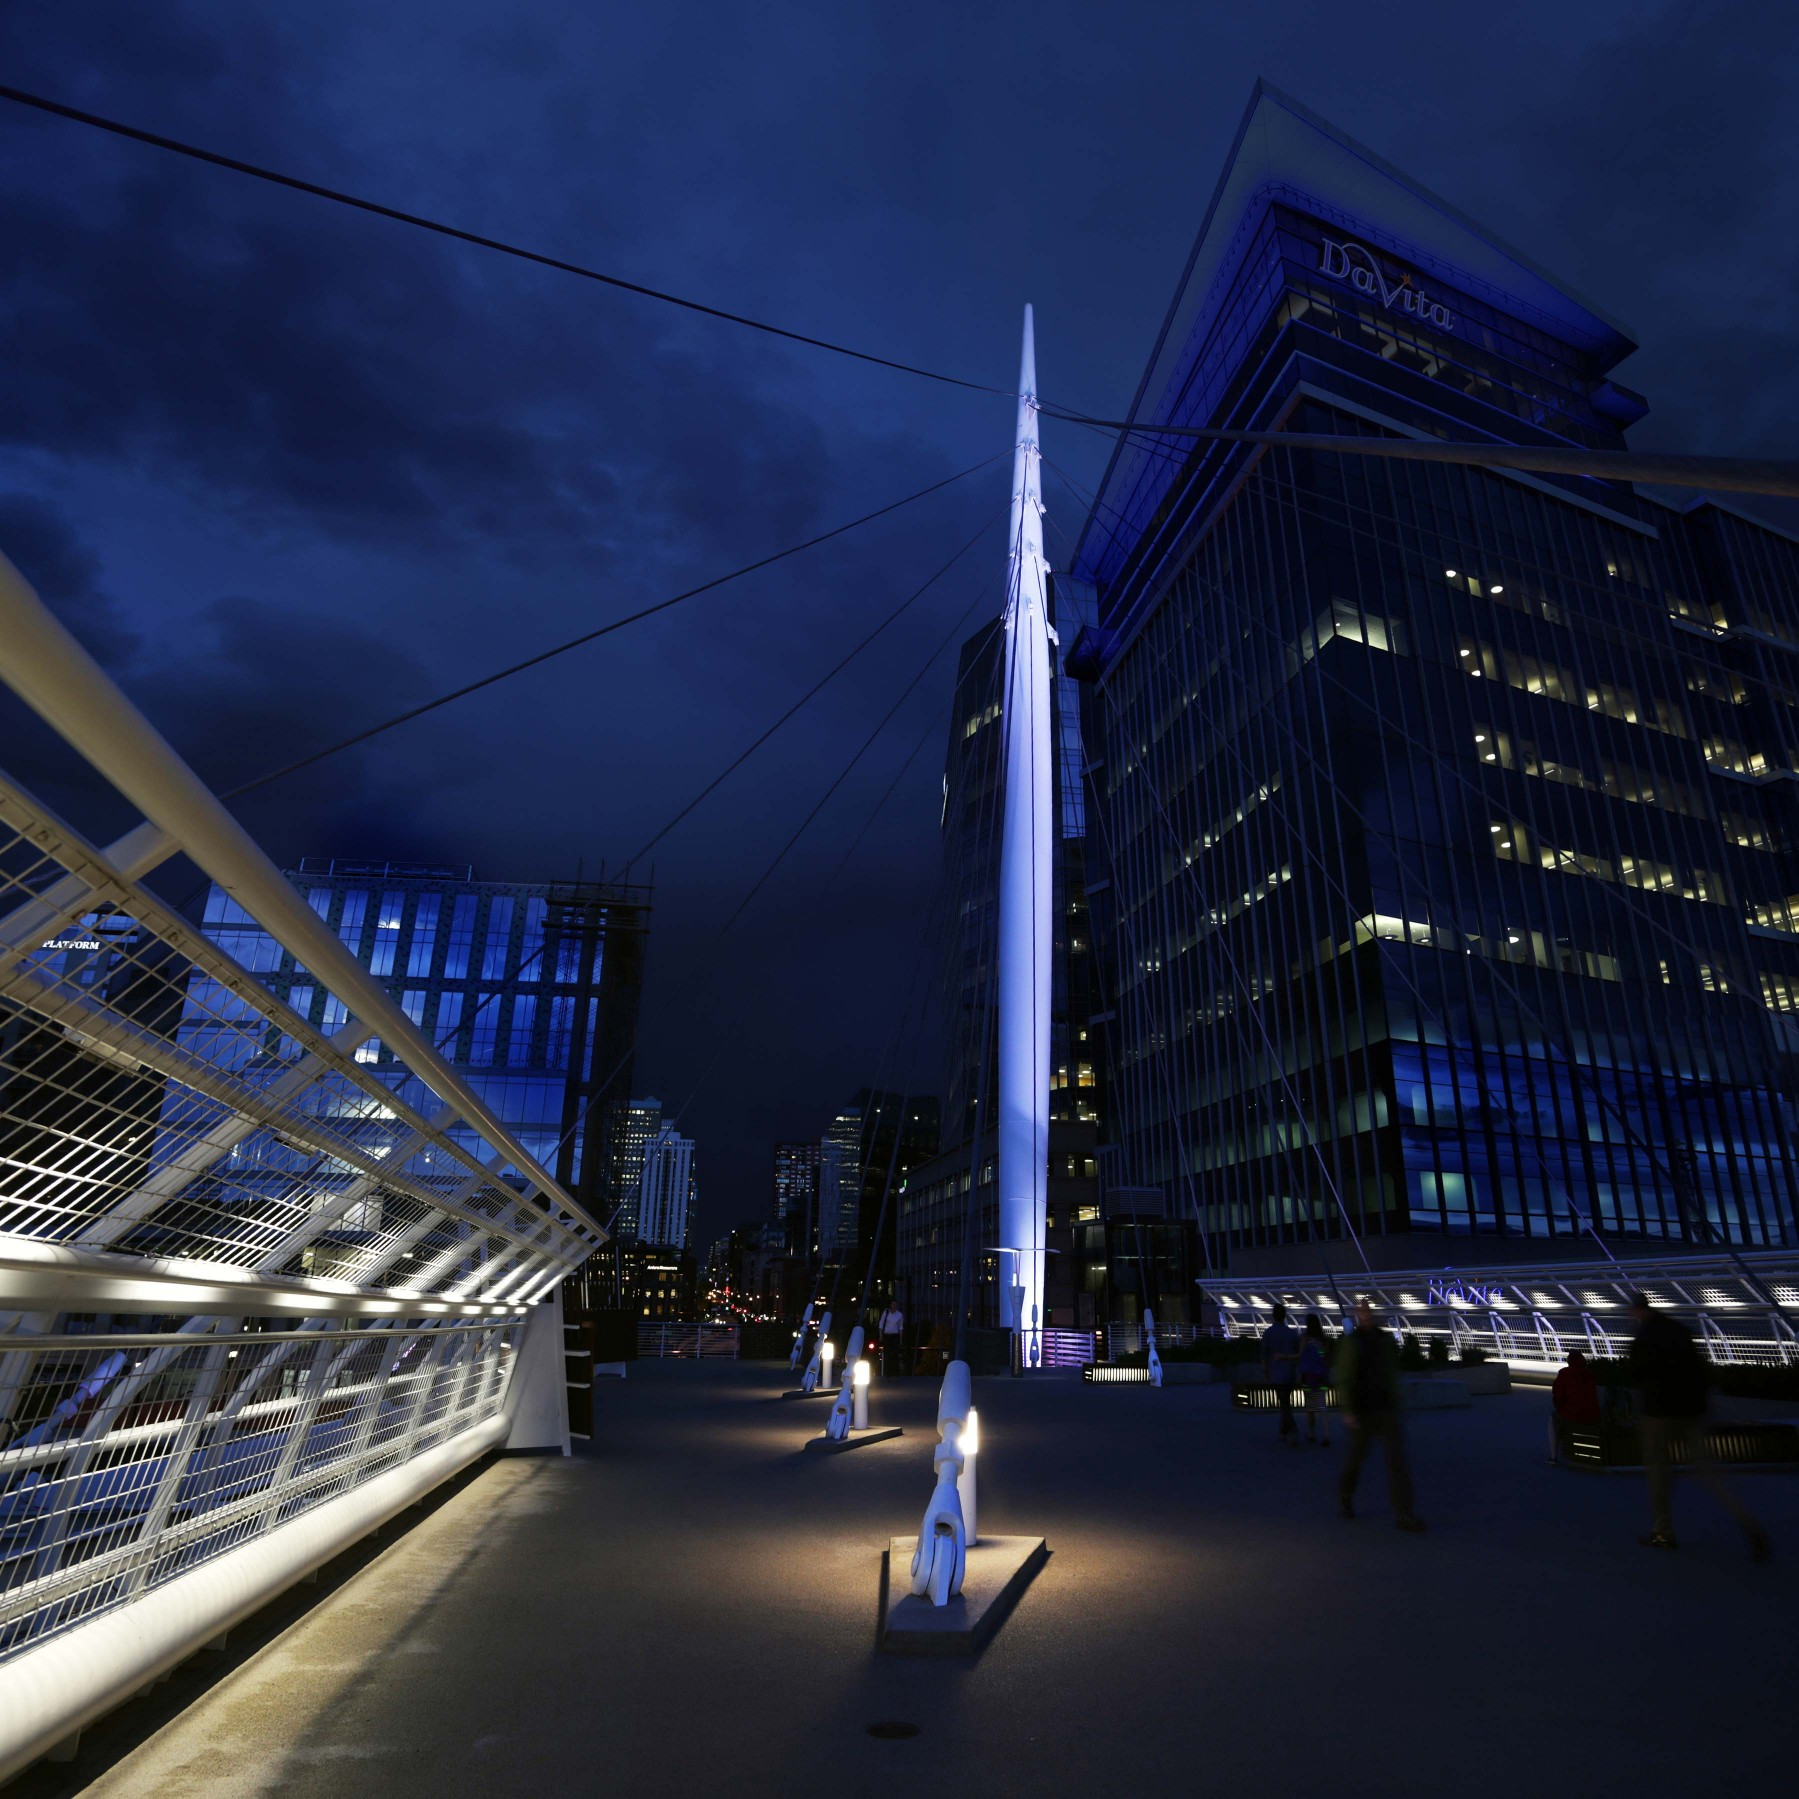 The 200-foot white tapered-steel mast is emboldened against the city's night sky  – Ryan Linton